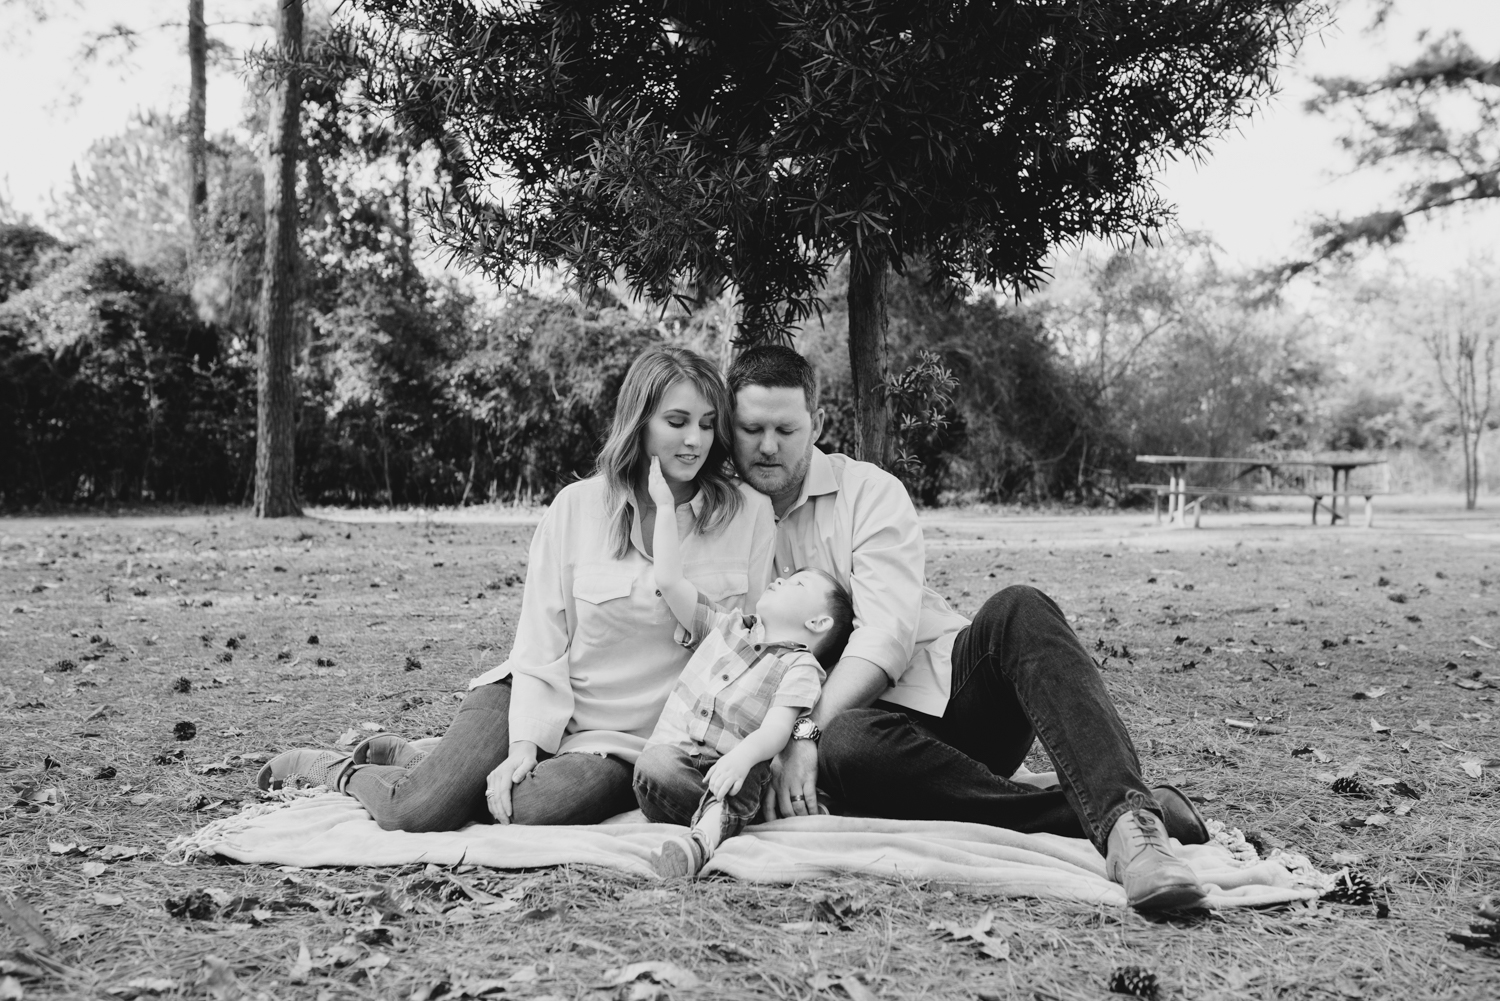 familysession-houstonfamilysession-familypictures-momanddad-family-torry-24.jpg